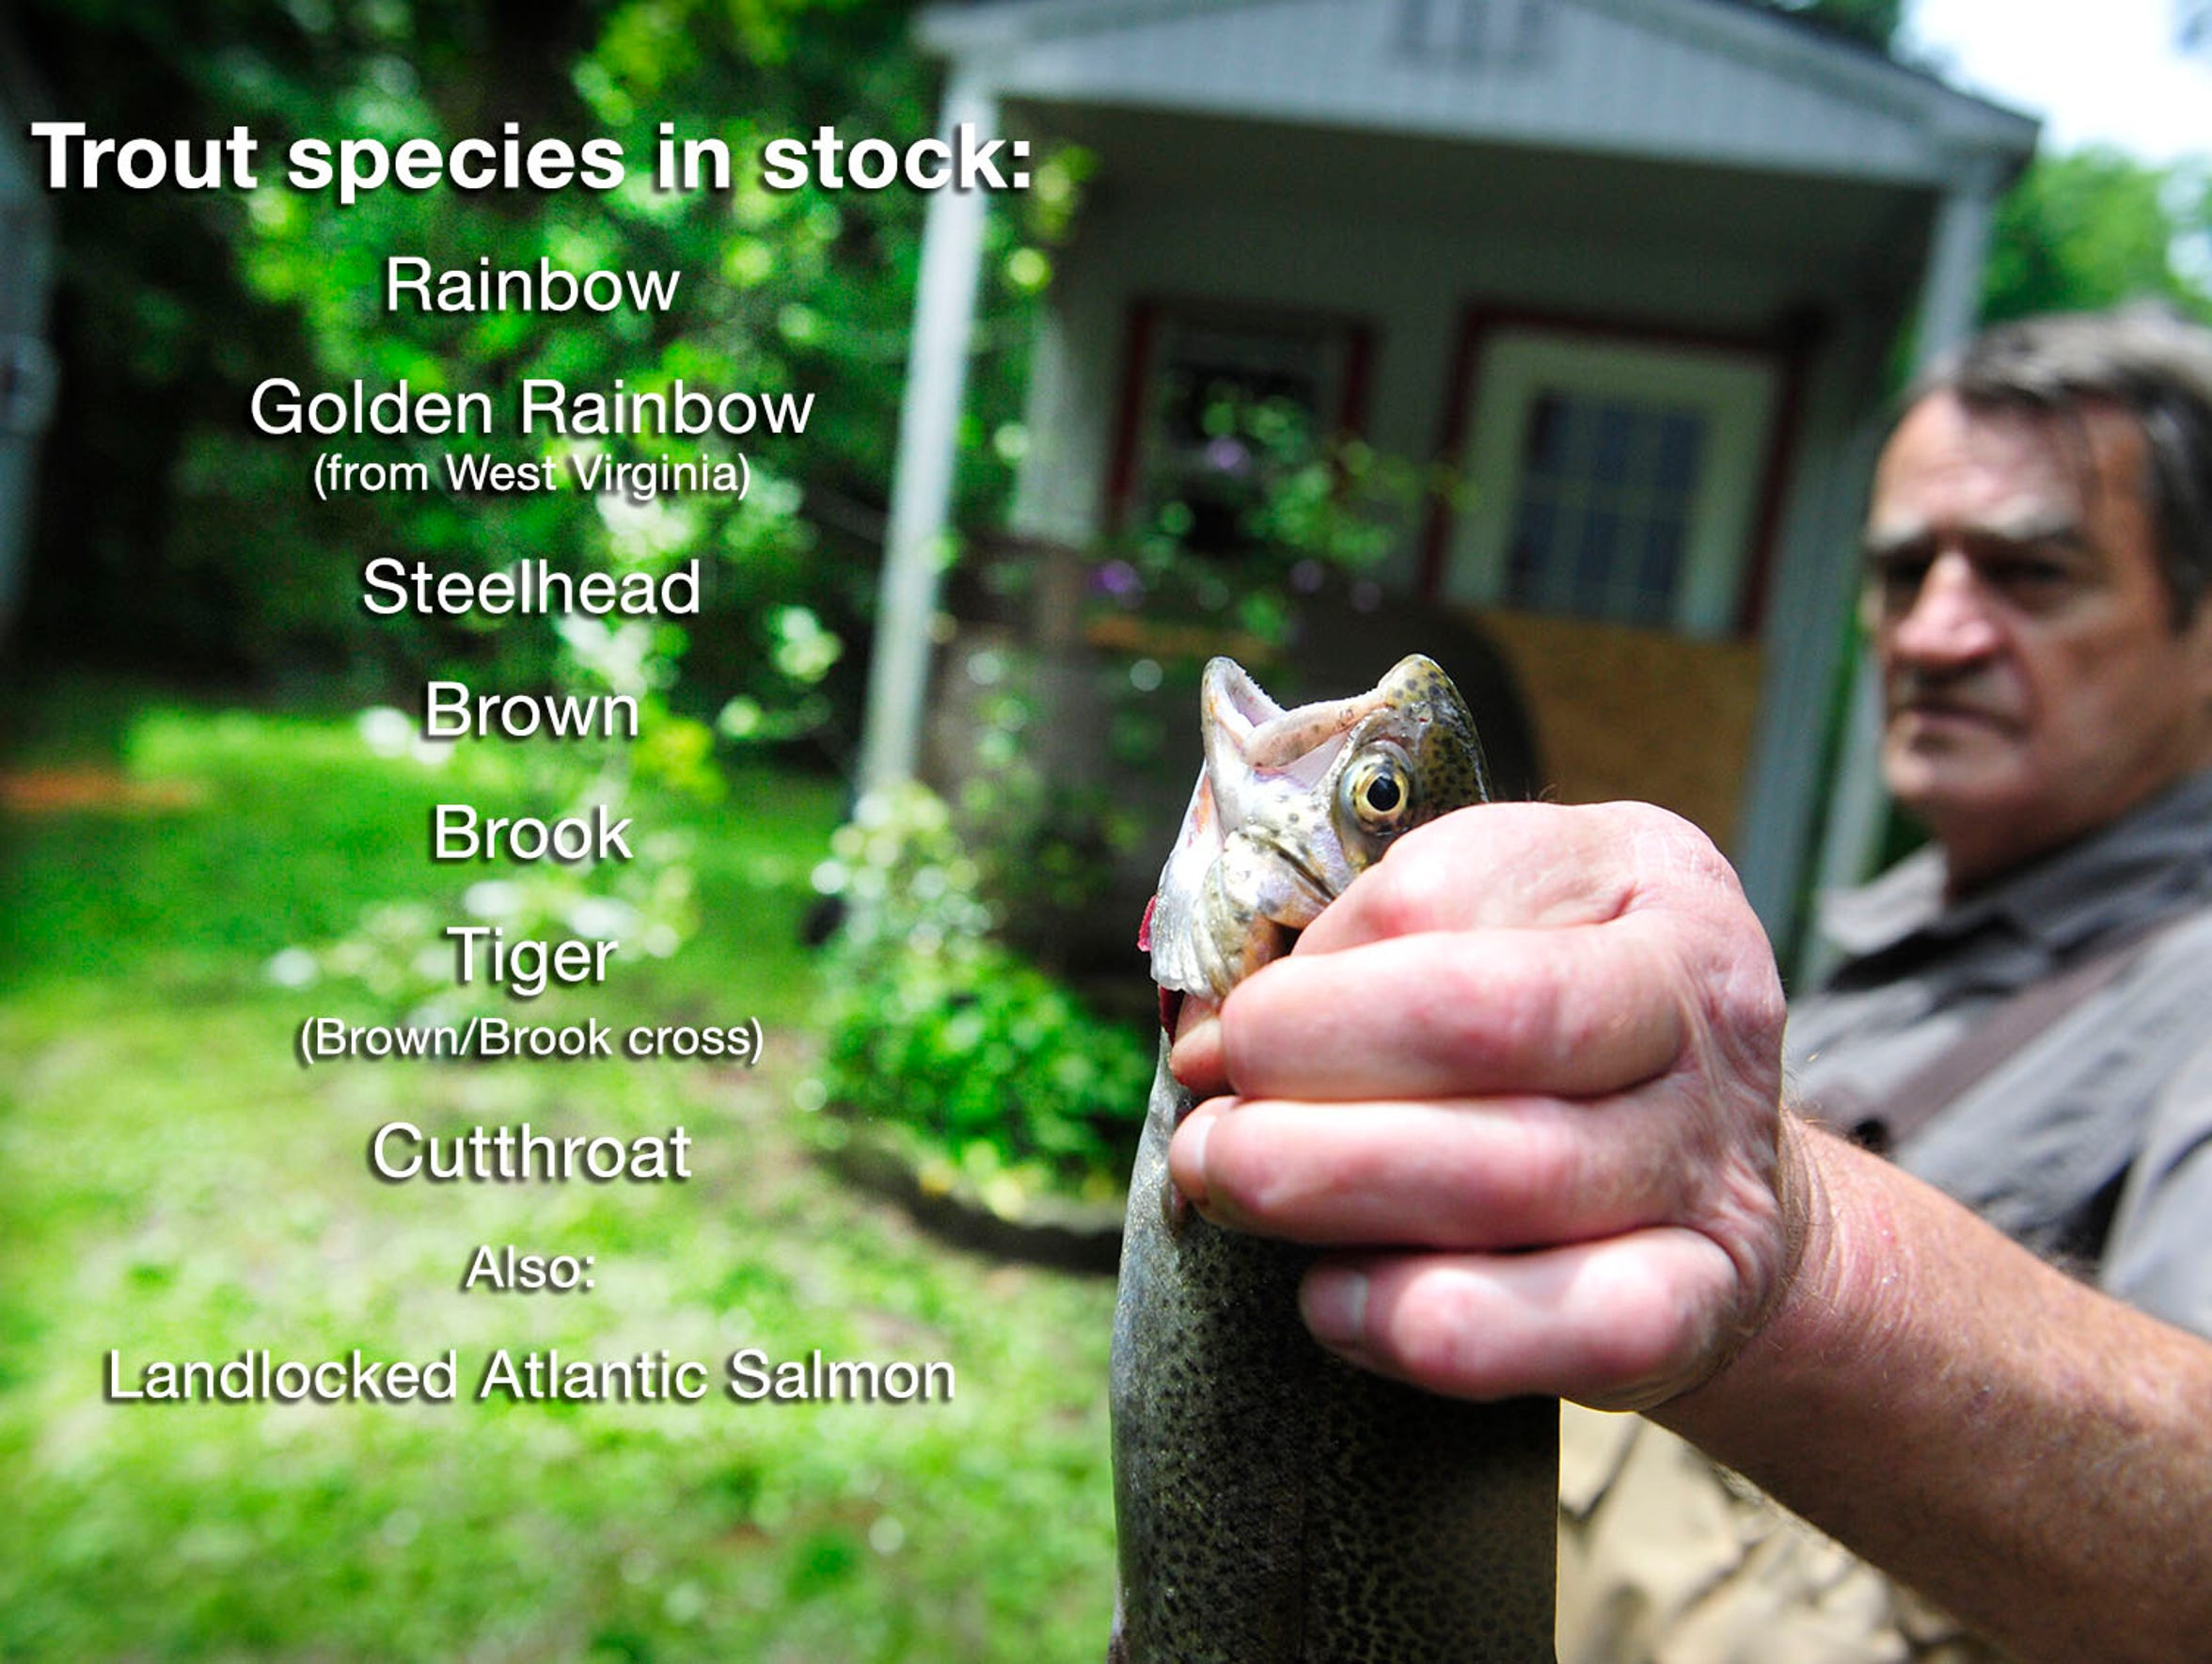 A list of the available fish species at Bob White Springs